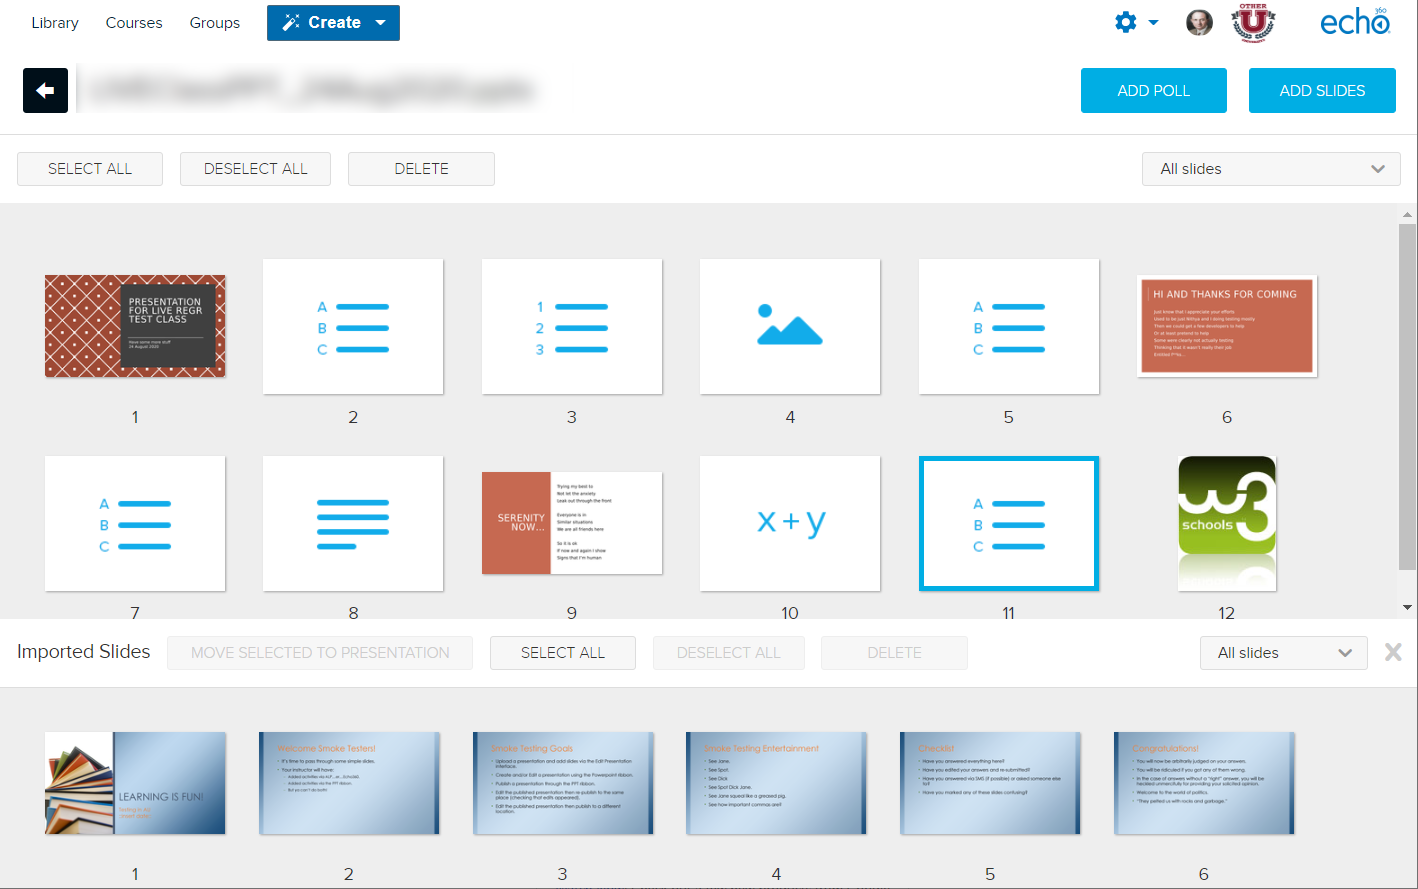 Edit presentation page with slides from the uploaded file shown across the bottom of the screen as described